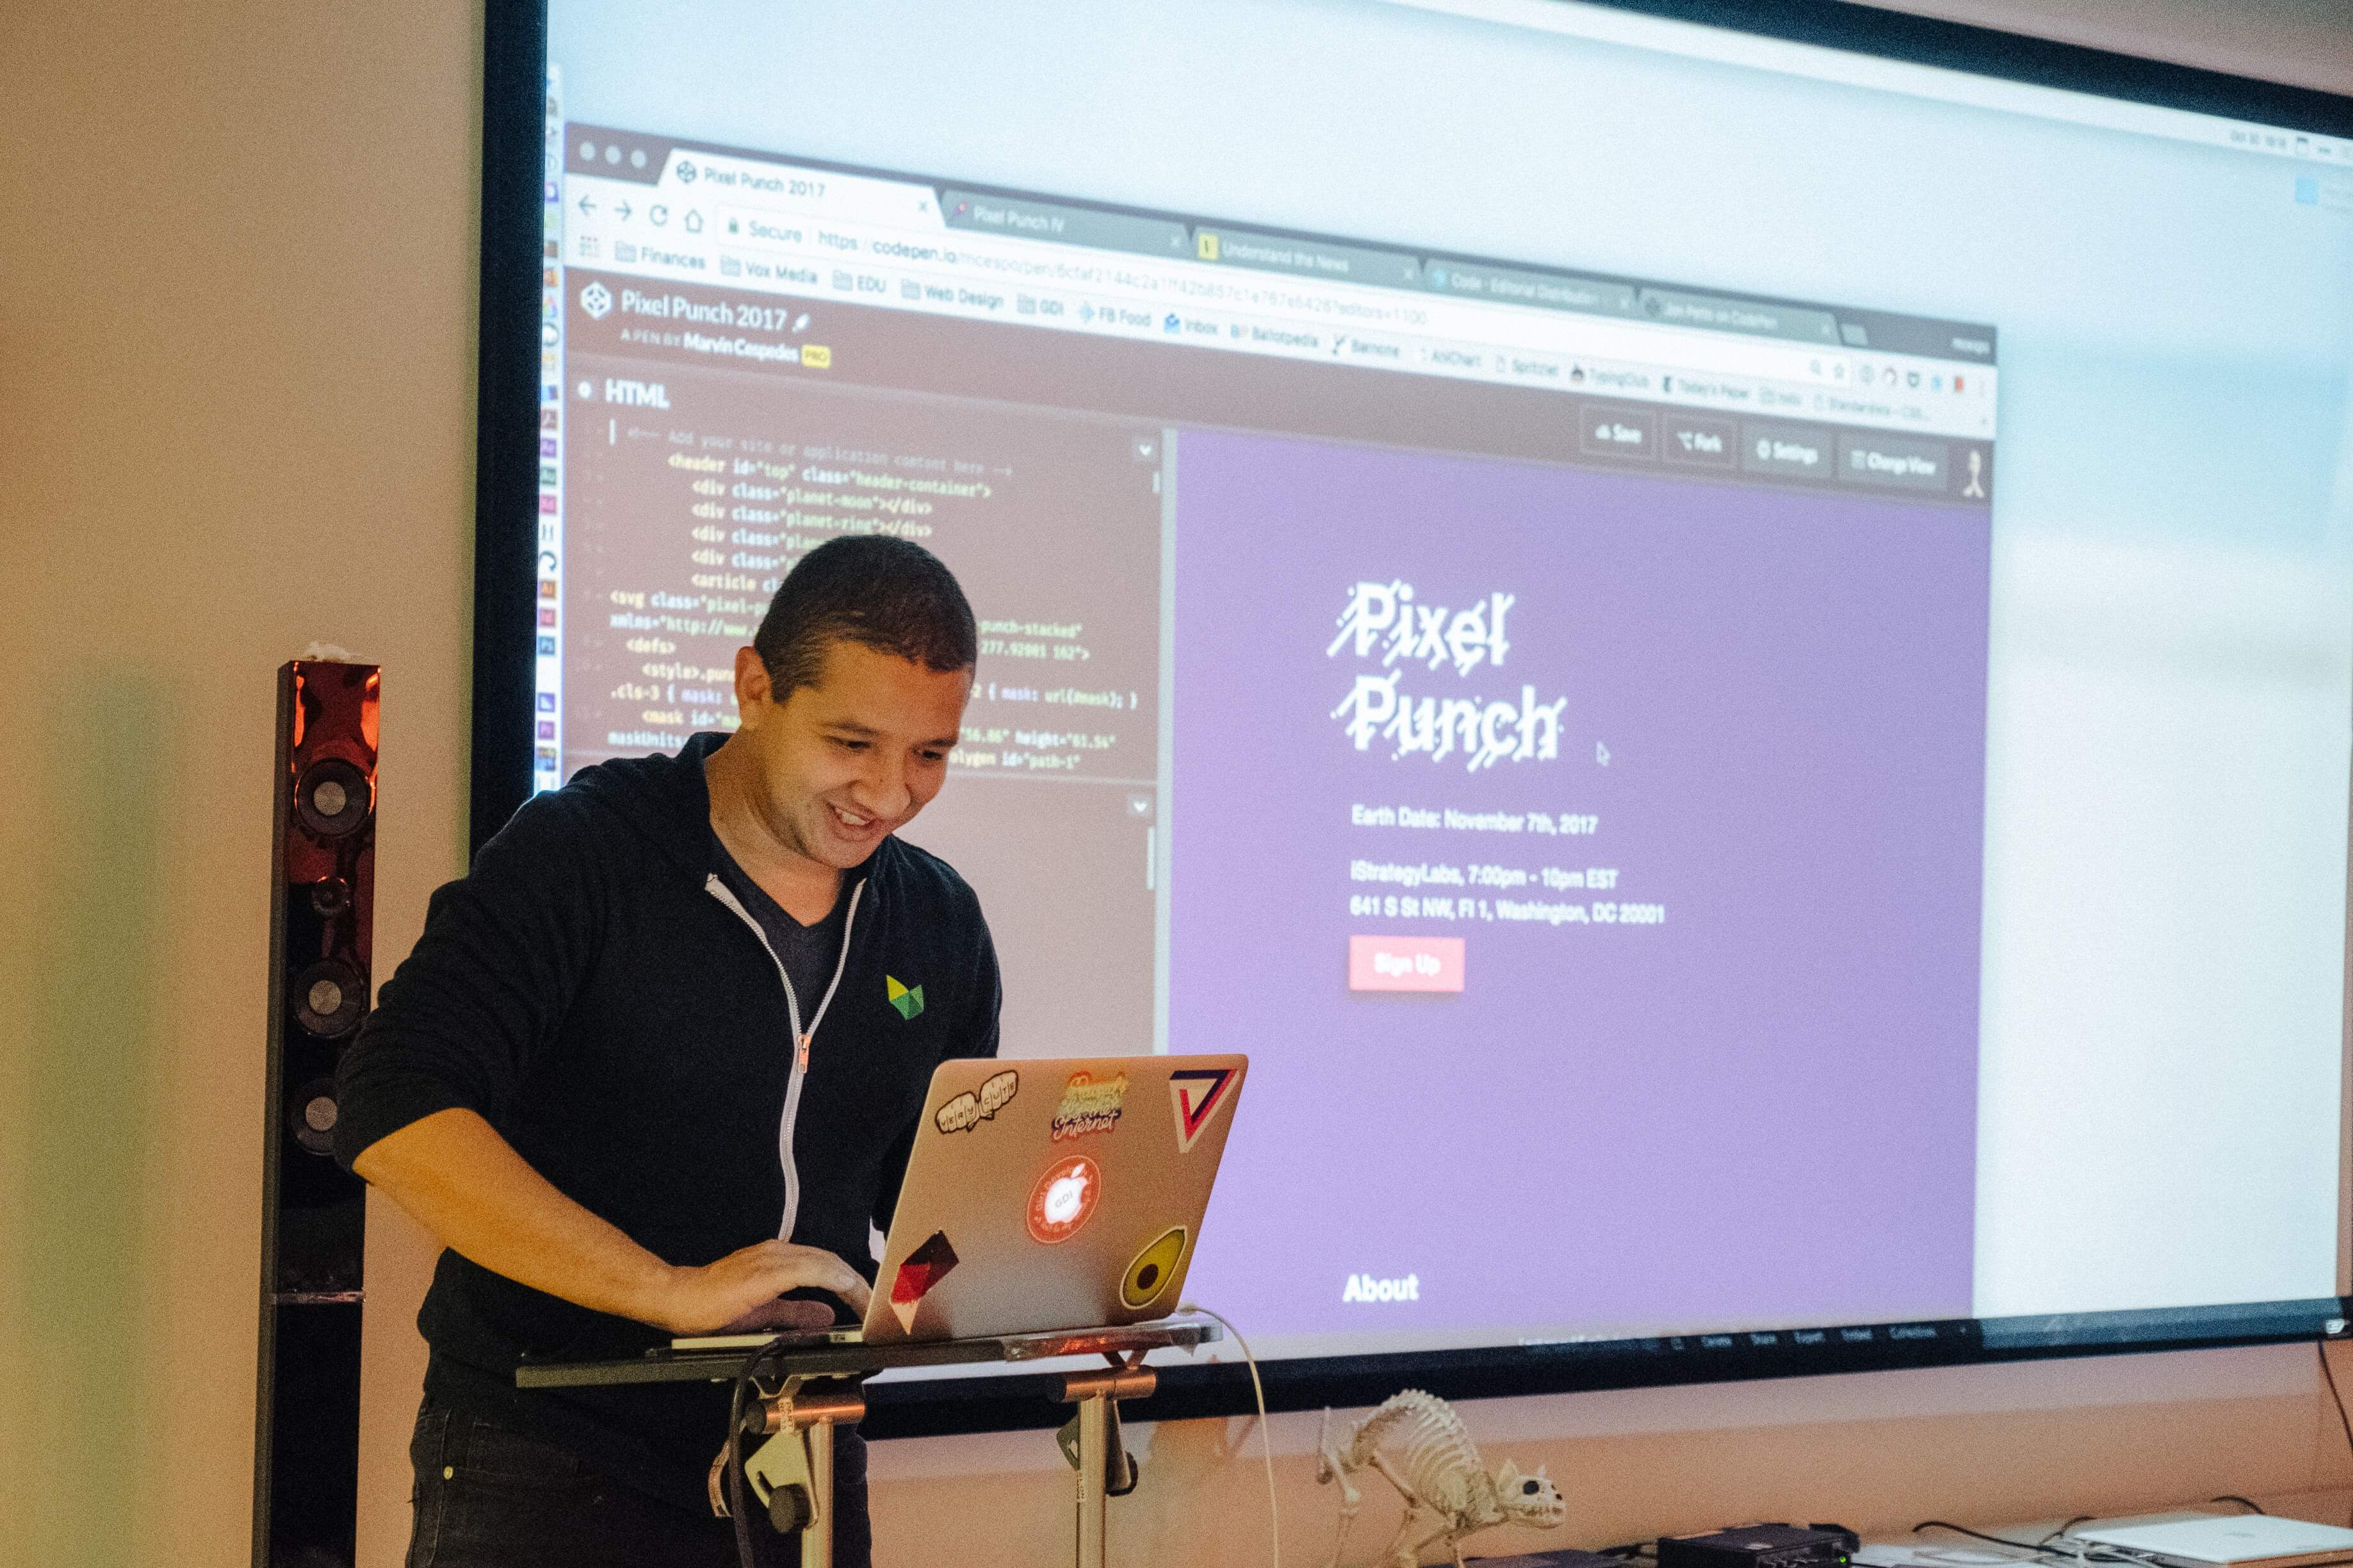 Marvin Cespedes presents Pixel Punch and happily representing Vox